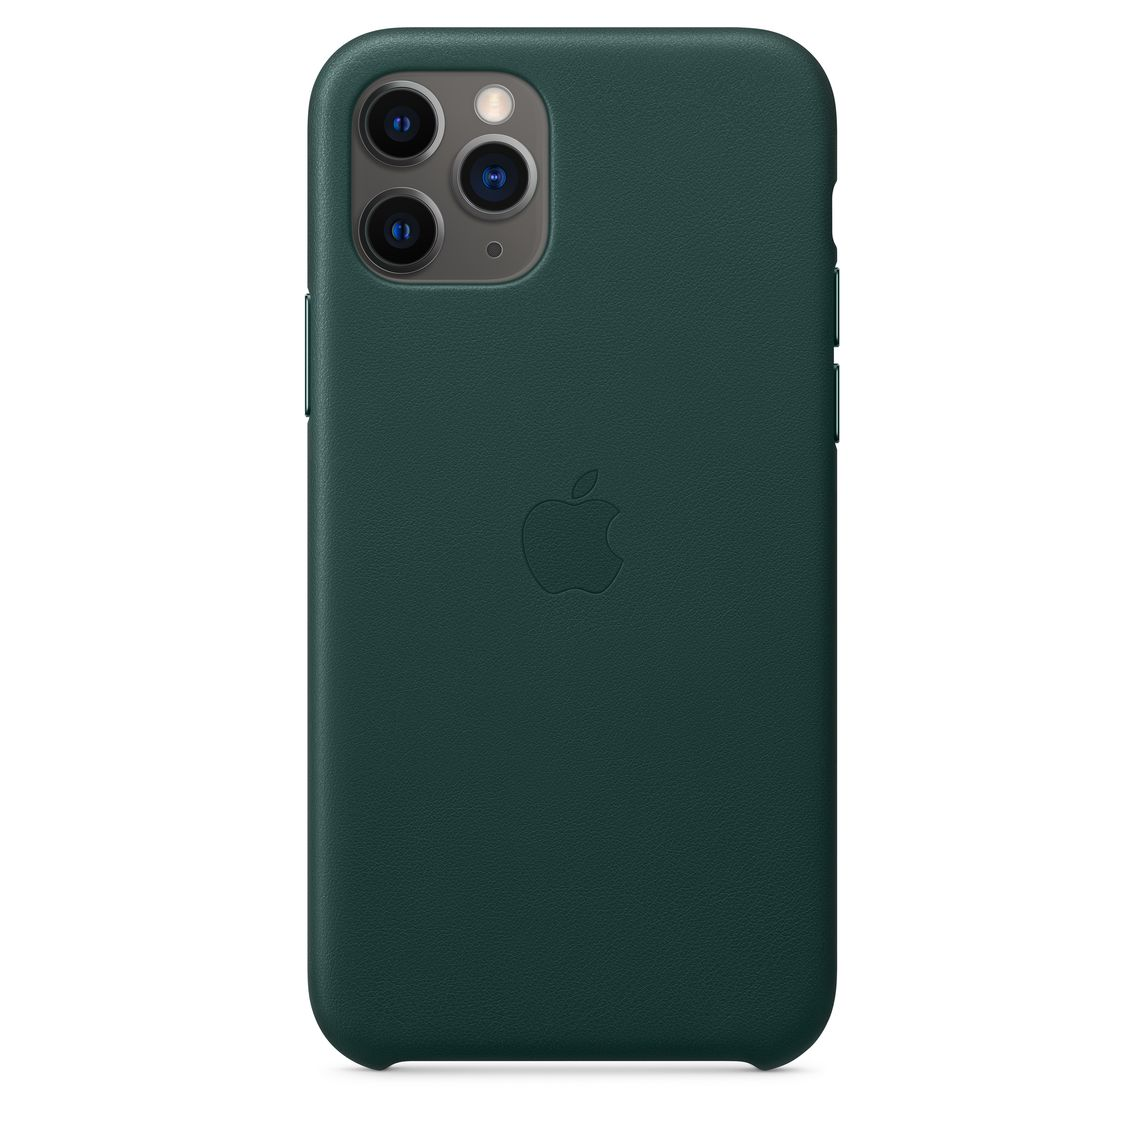 APPLE CUSTODIA COVER Per Iphone 11 Pro Silicone Case Originale